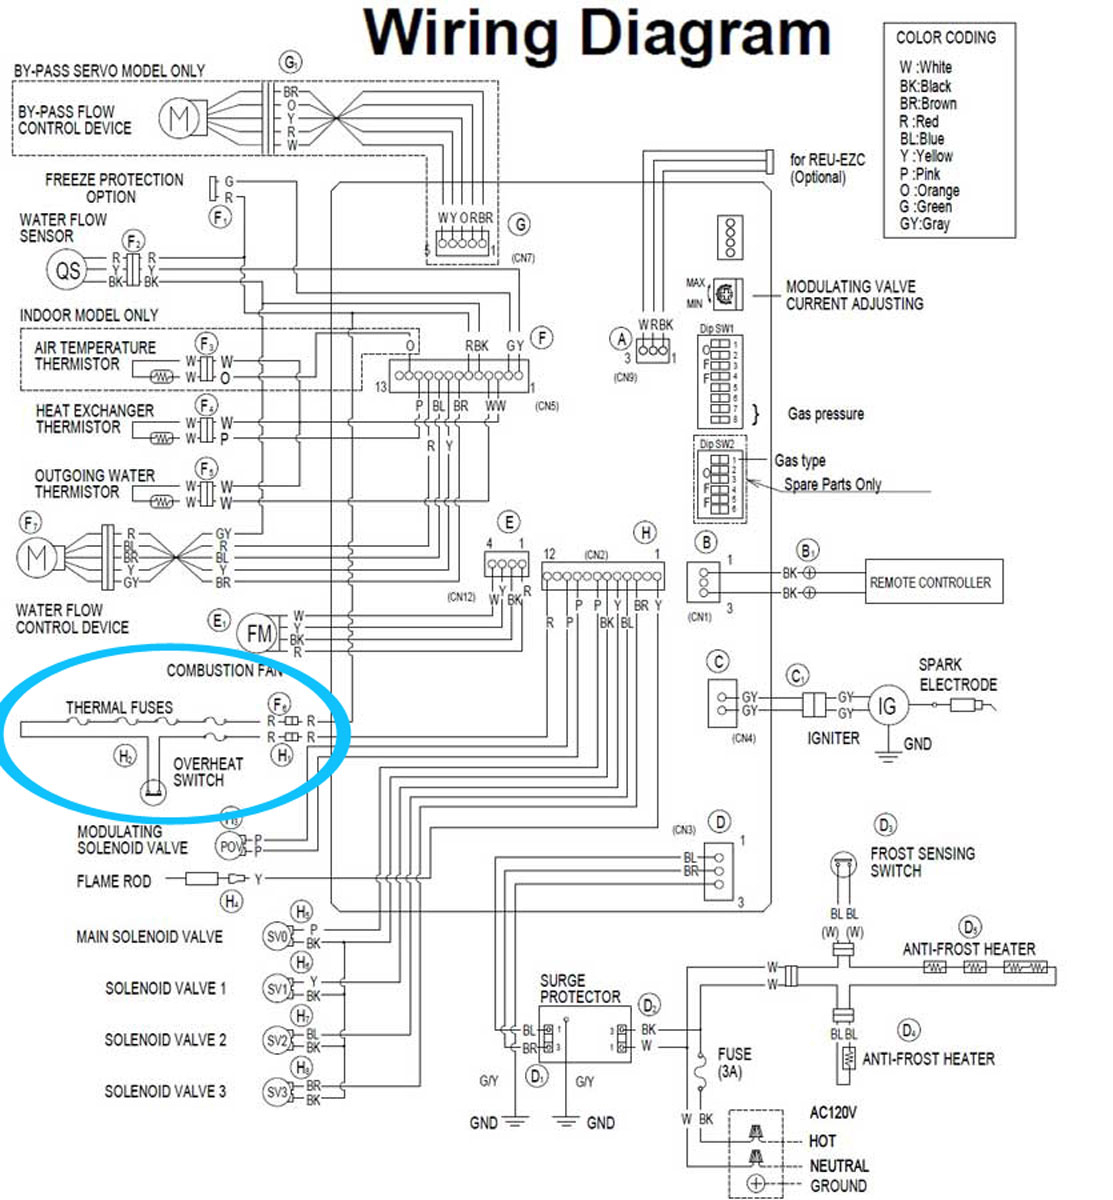 titan n 120 wiring diagram Download-Check the electric troubleshoot from 2008 pdf 5-s